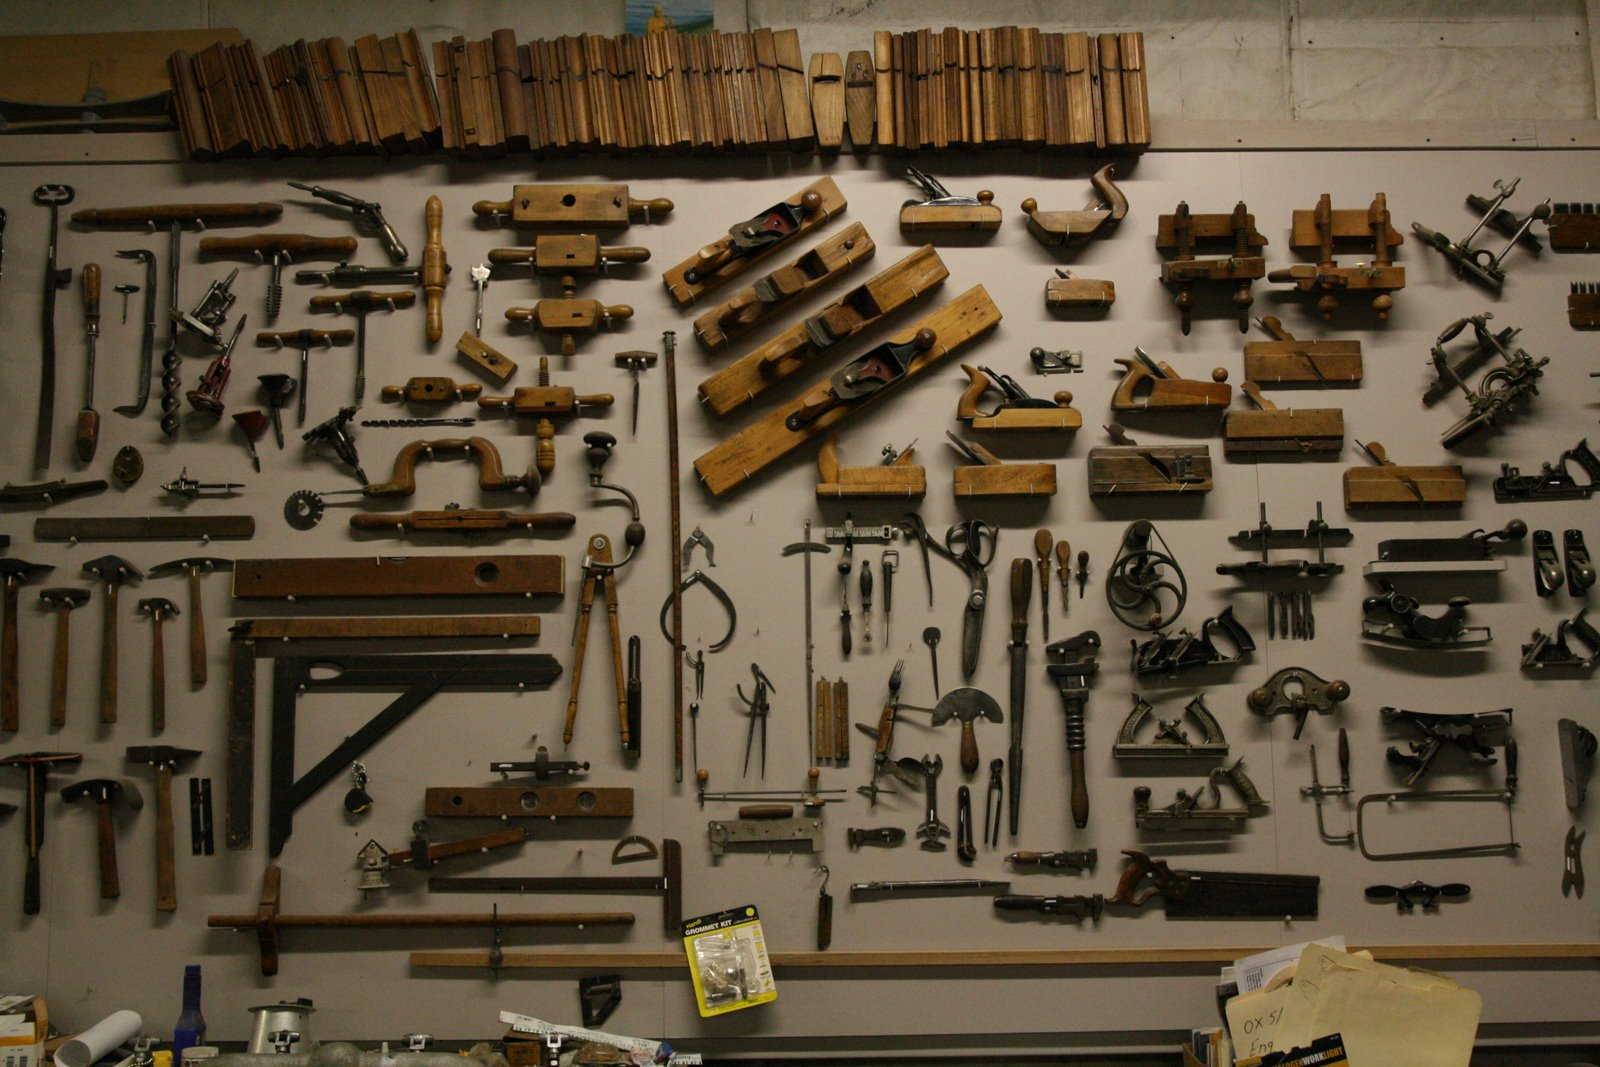 100 Years Ago Today: Antique Woodworking Tools